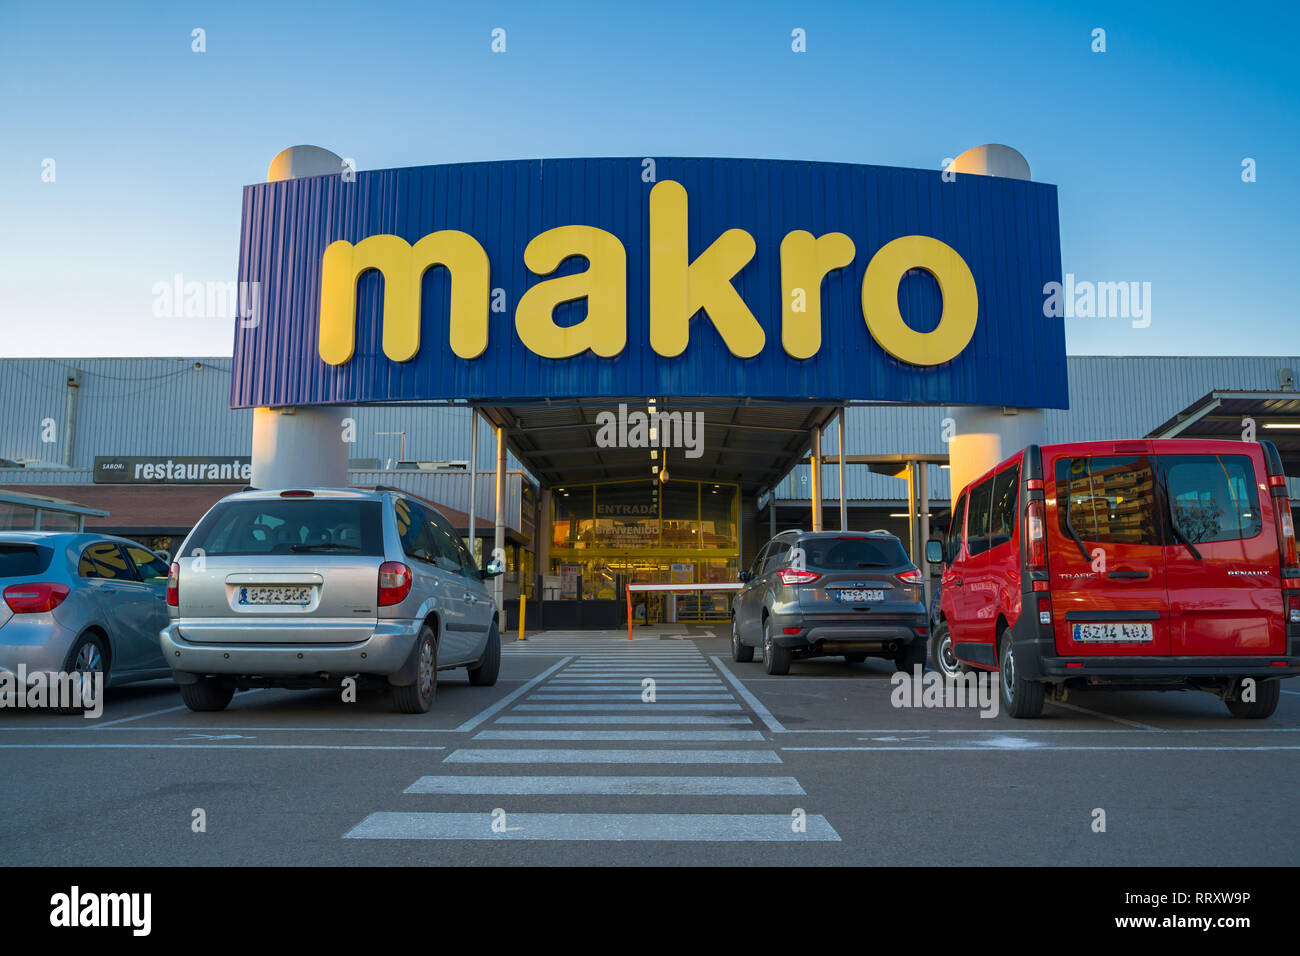 Valencia,Spain - February 26 2019: Warehouse club, wholsesale. Makro is an international brand of warehouse clubs, also called cash and carries. - Stock Image